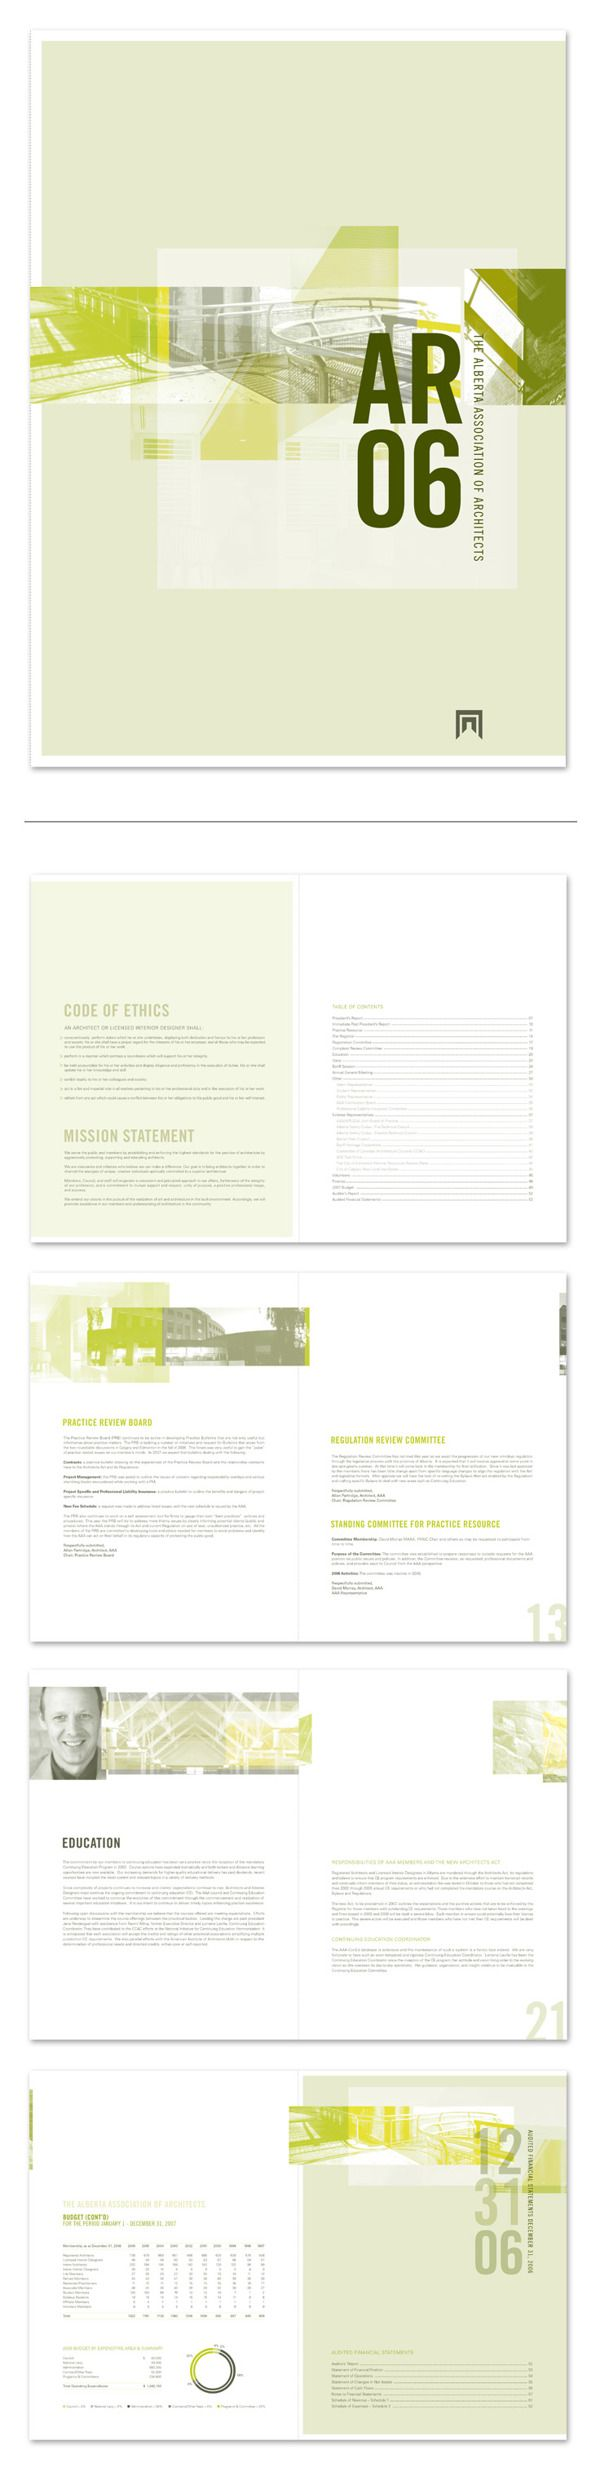 #AB #Association #Architects #Annual #Report #Layout #Design #Green #Vert #Cover #Mise #en #Page